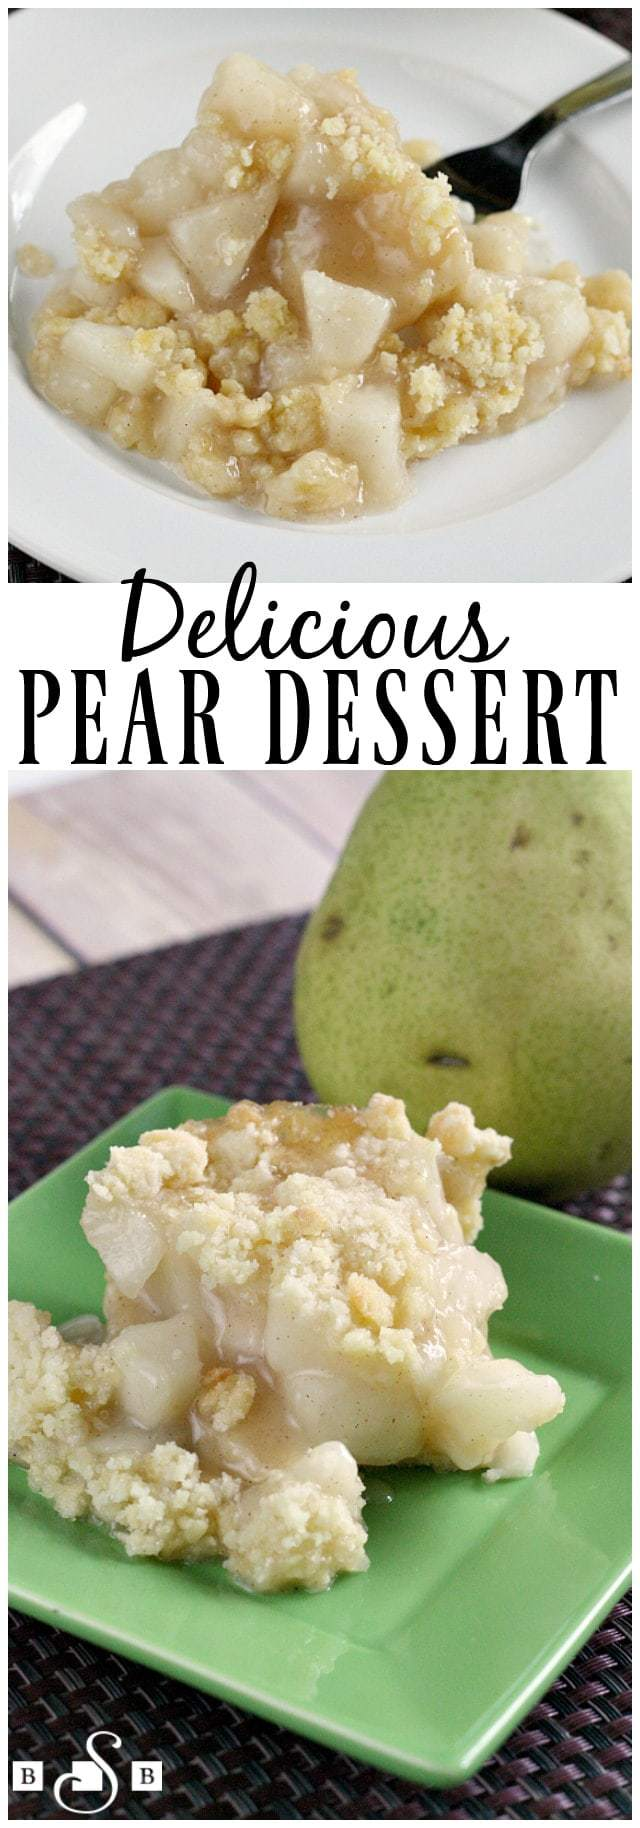 Delicious Pear Dessert - Butter With a Side of Bread